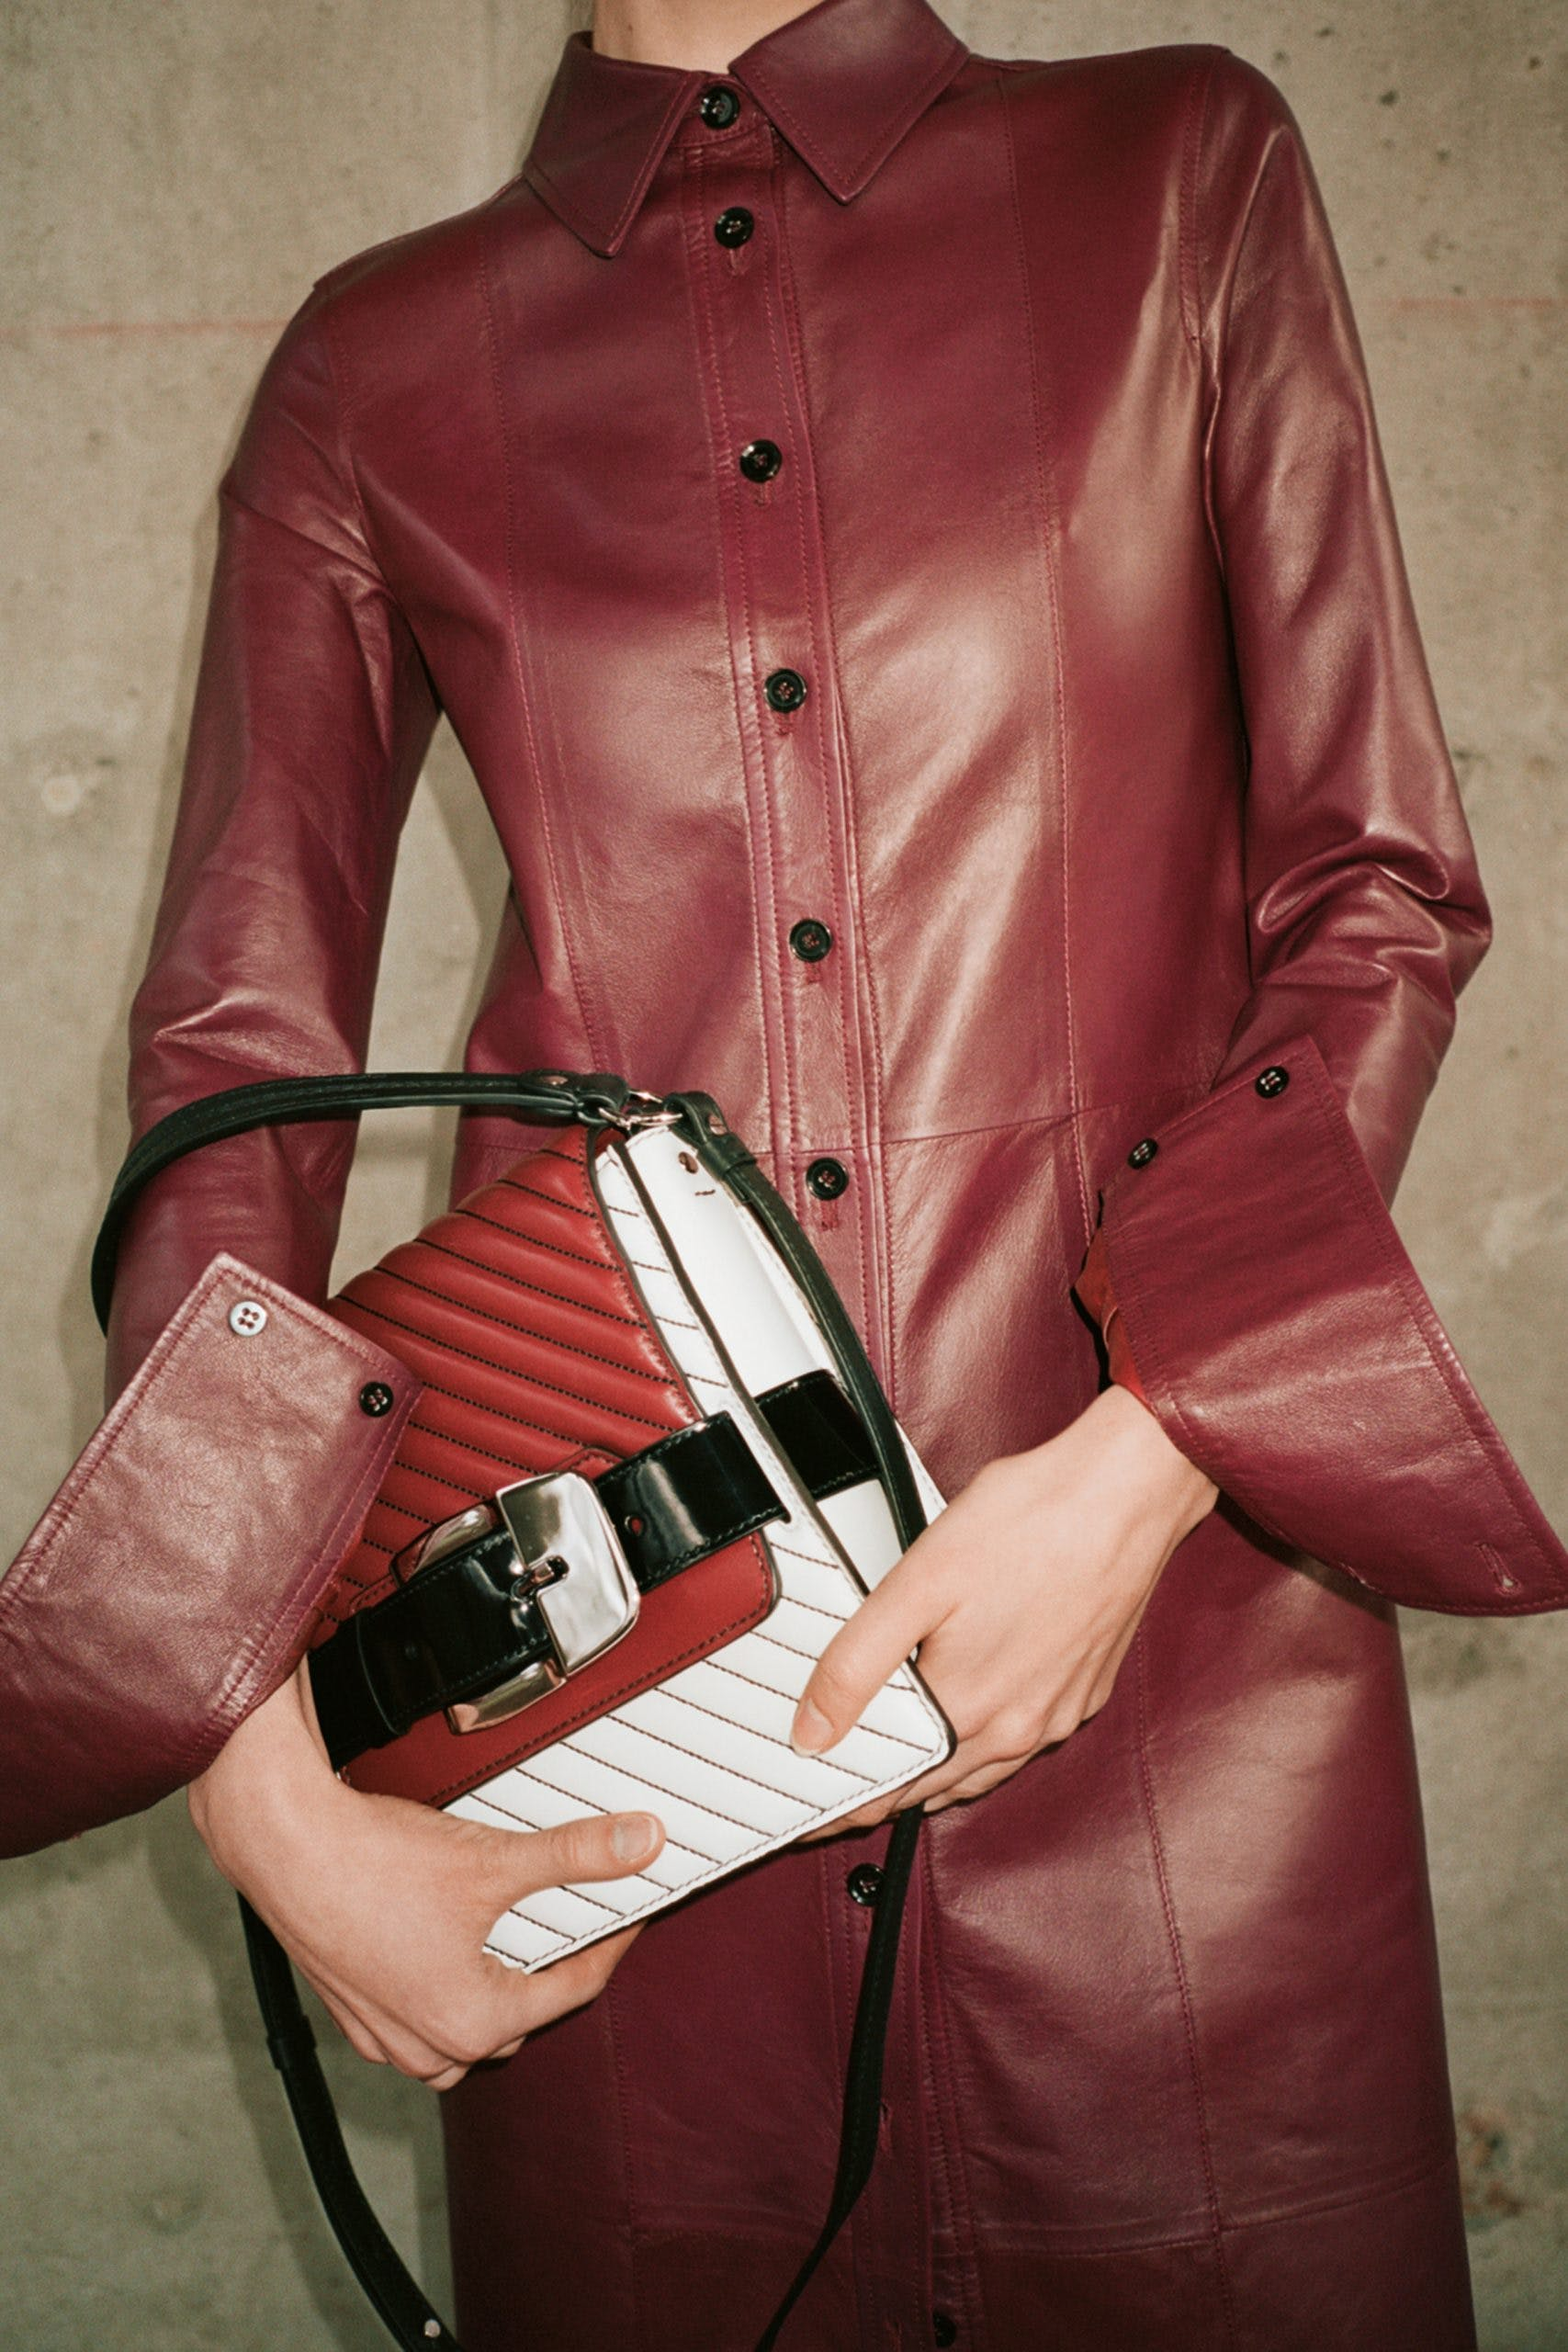 proenza schouler pf20 red and buckle bag  red button up leather coat